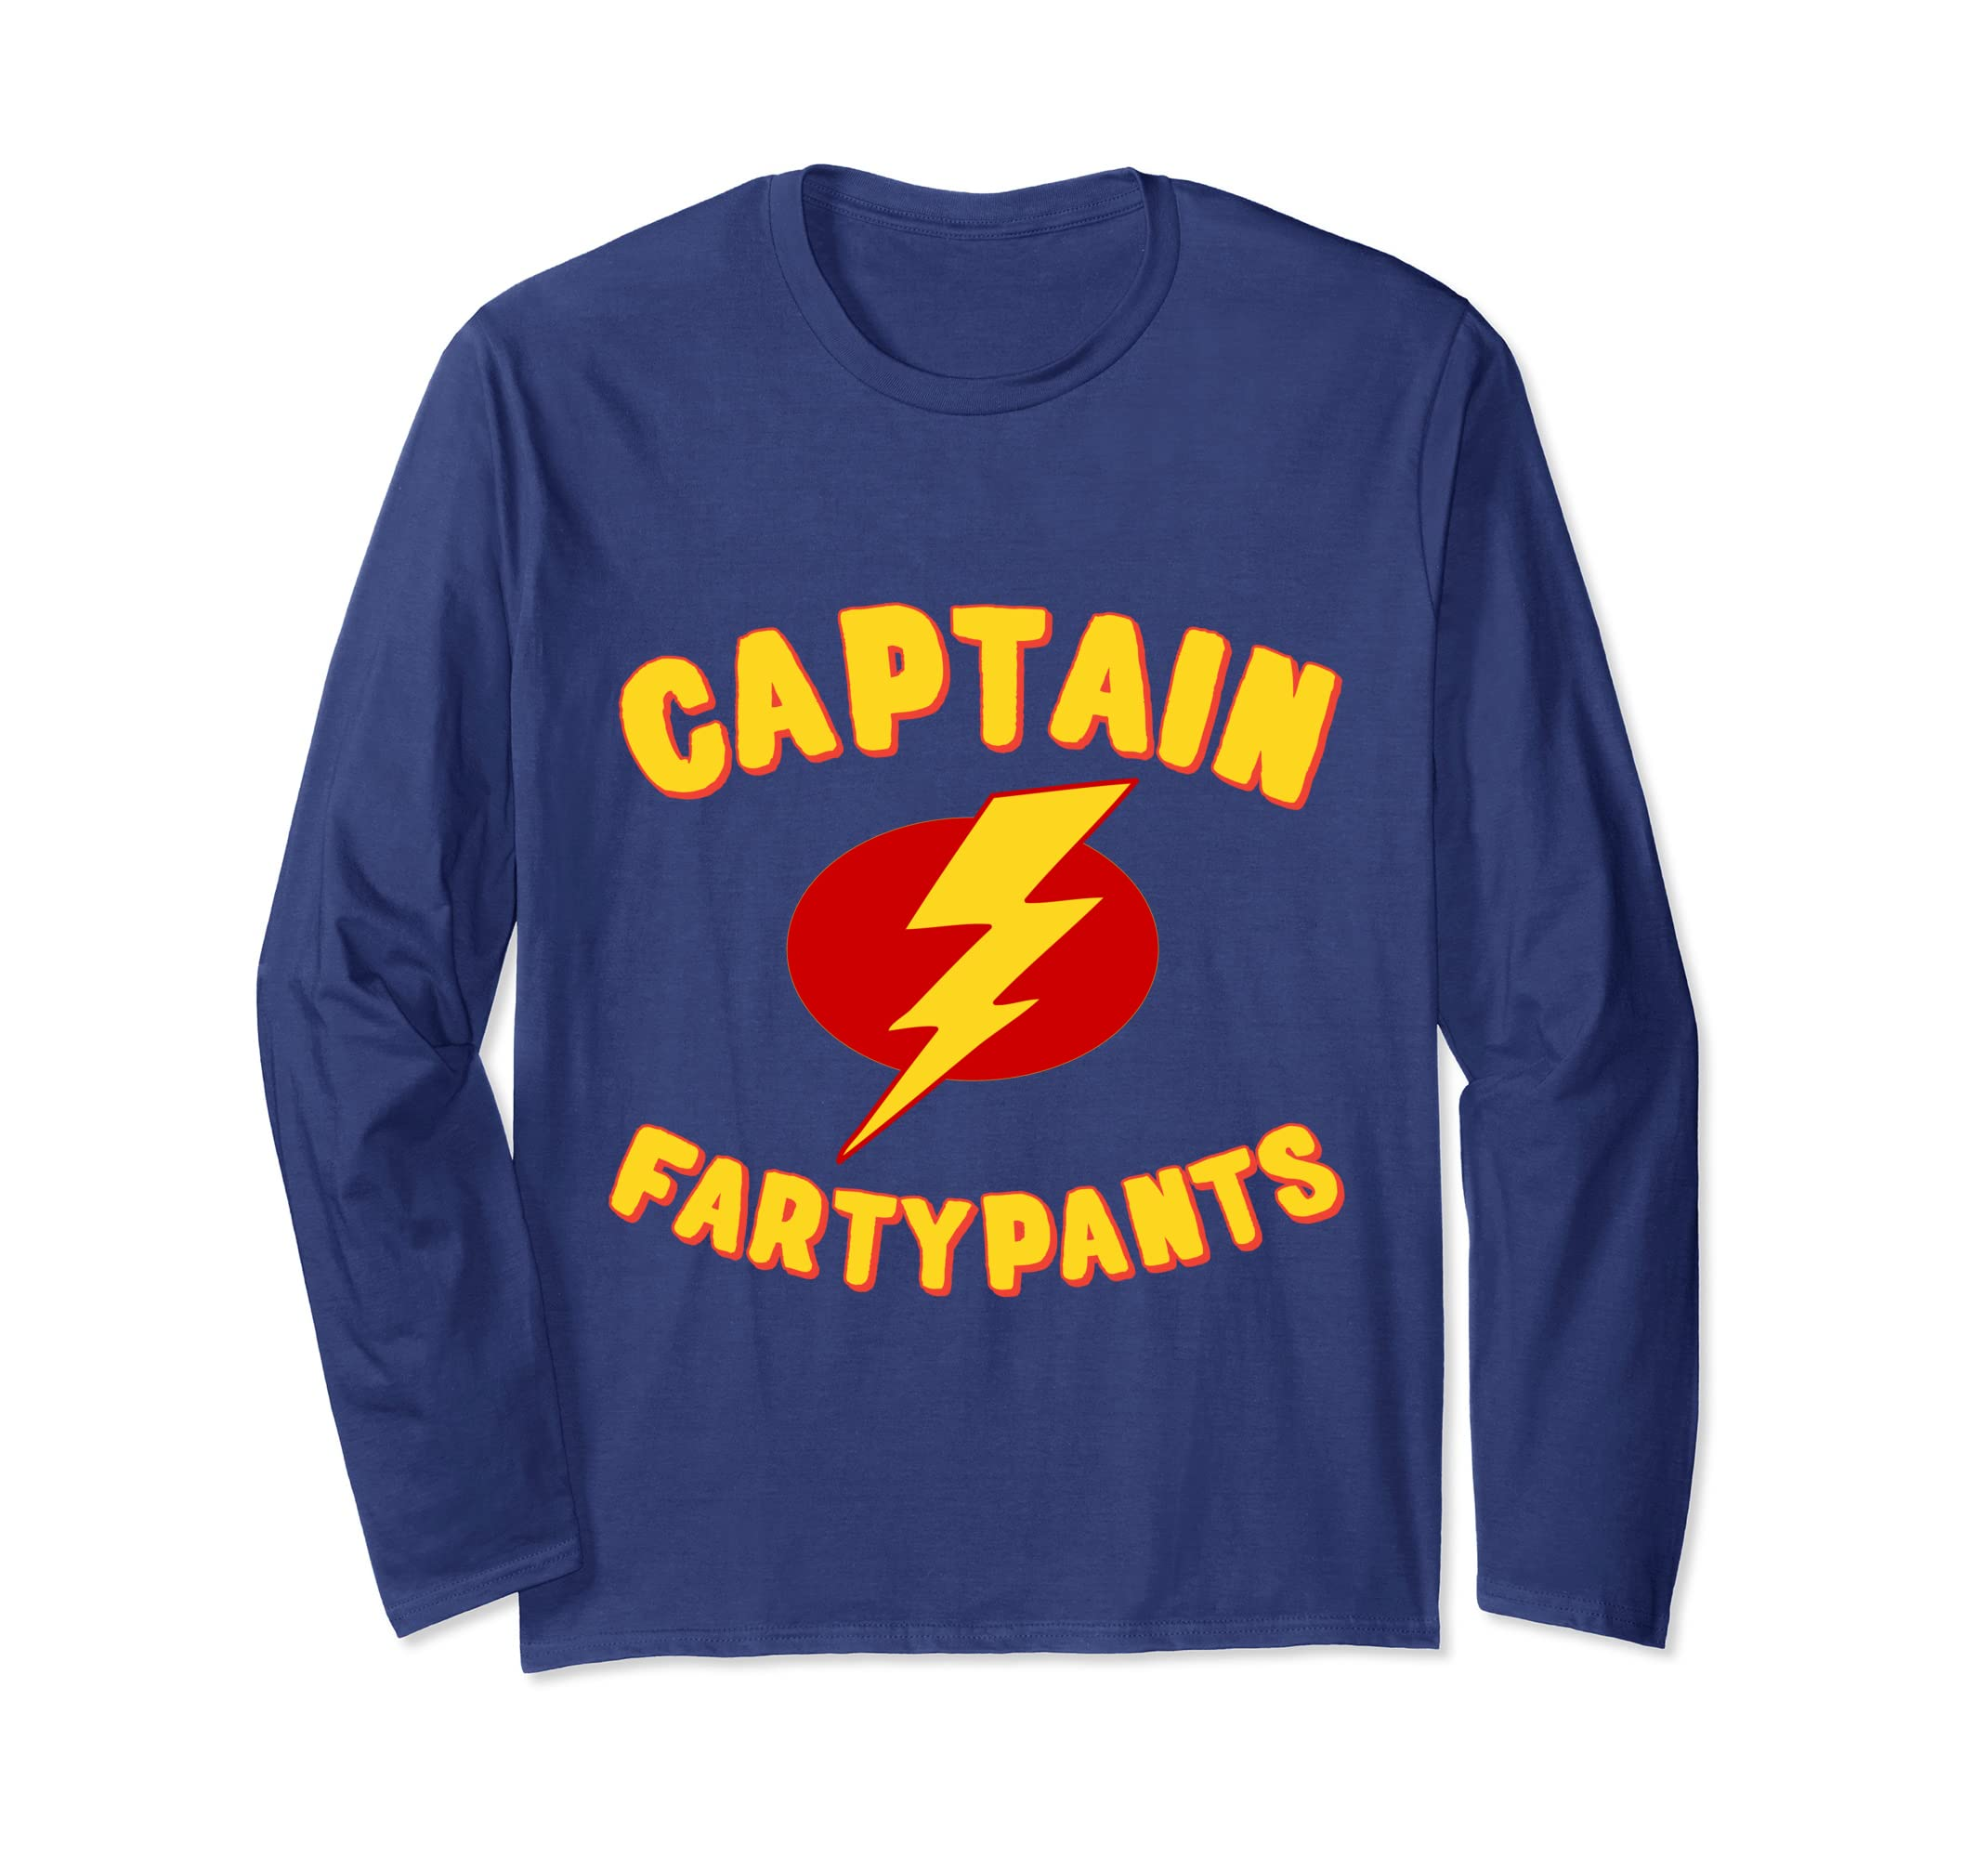 f86e8c0ea Amazon.com: Captain Fartypants Funny Fart Long Sleeve T-Shirt: Clothing